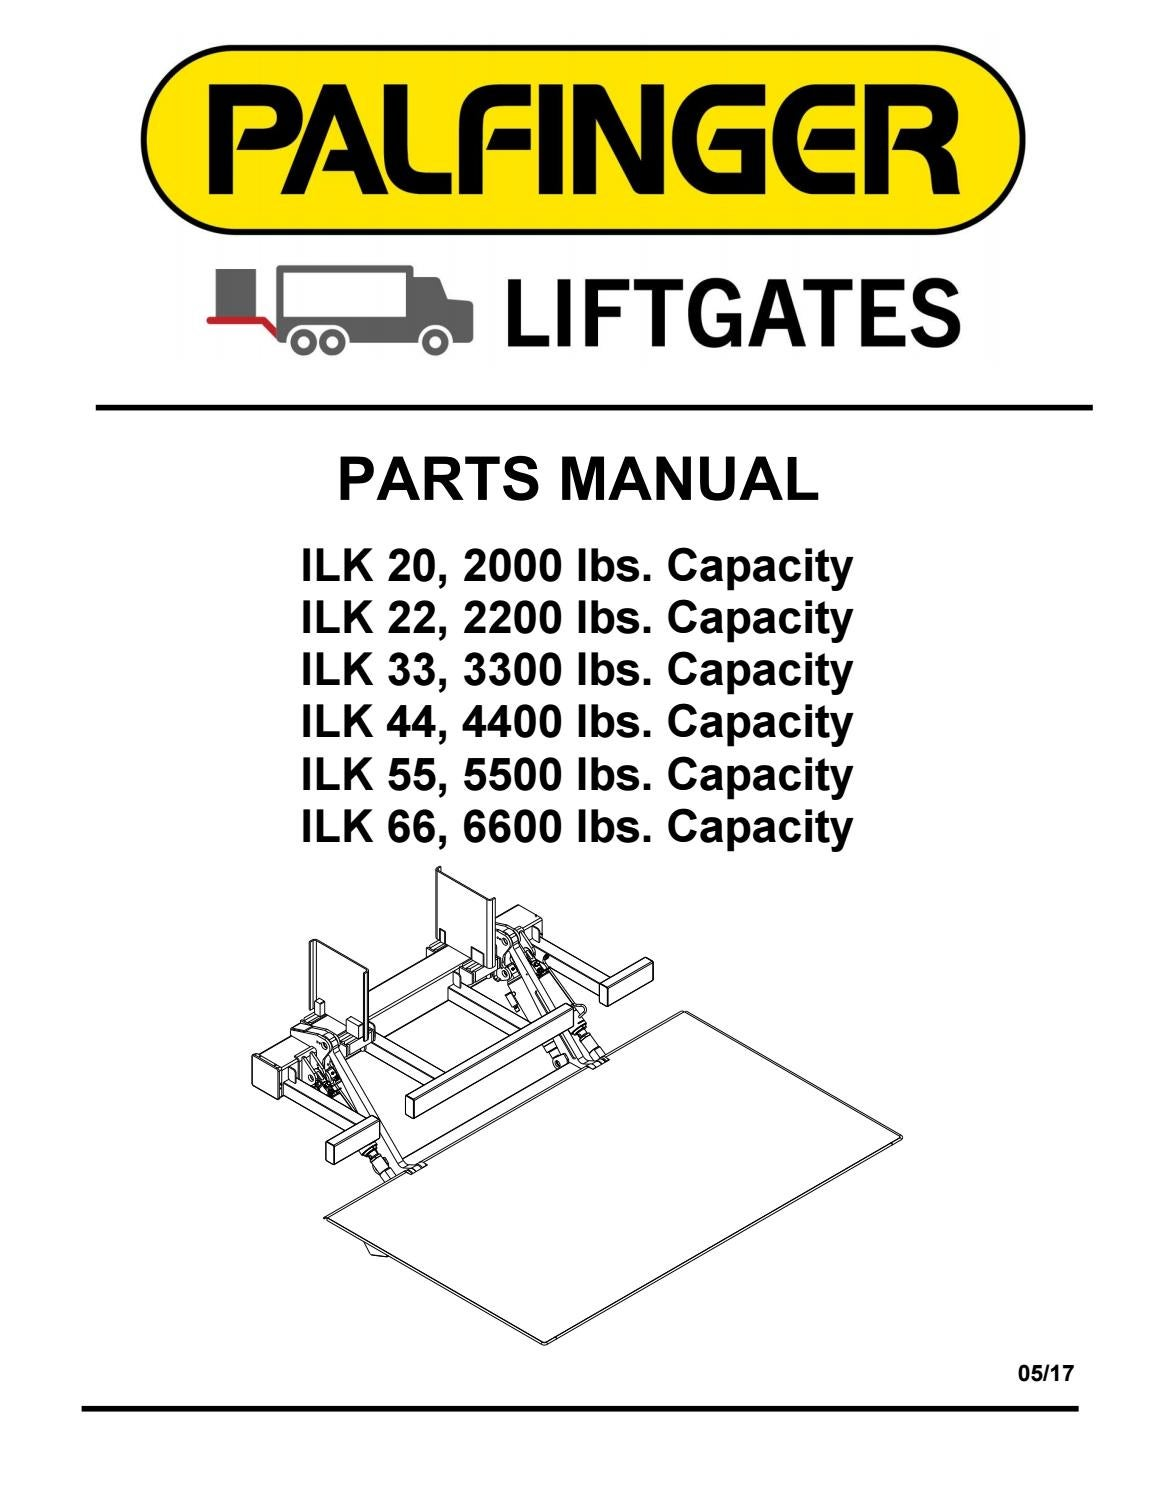 hight resolution of palfinger ilk 20 22 33 44 55 66 liftgate parts manual by the liftgate parts co issuu